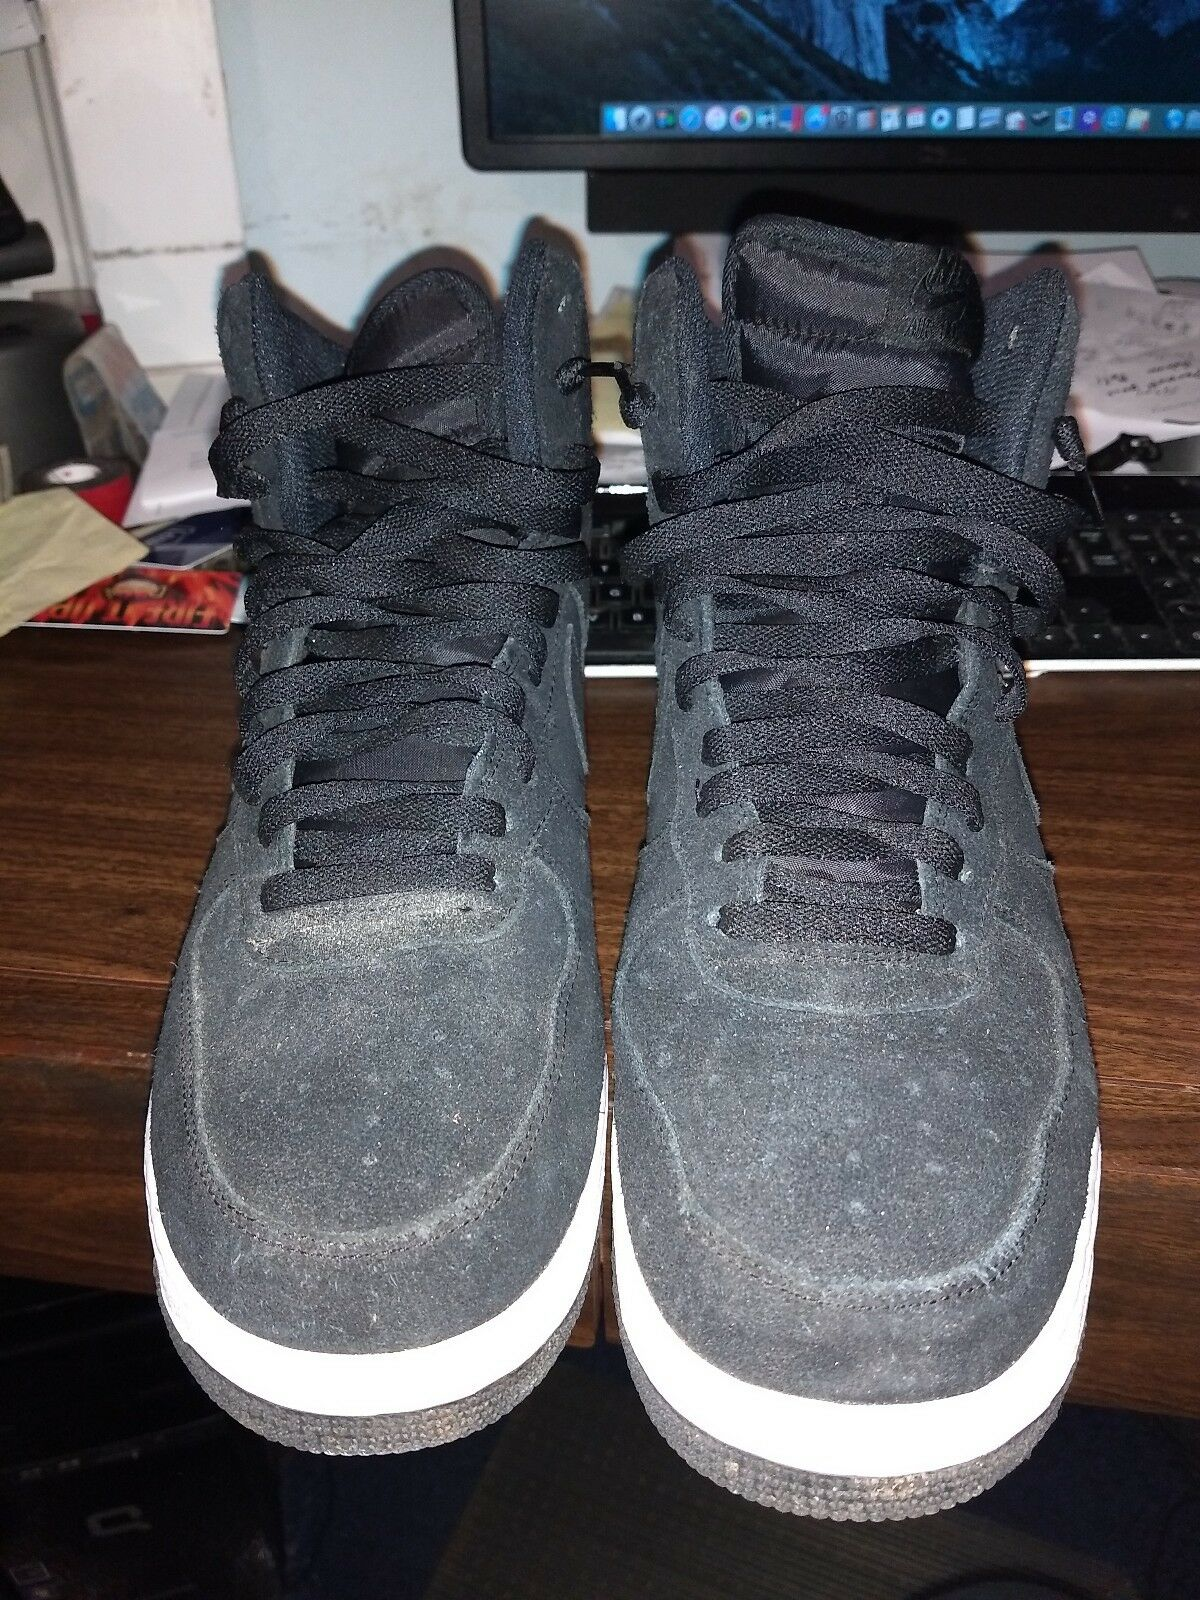 Nike Air Force 1 High  315121-038, Size 11